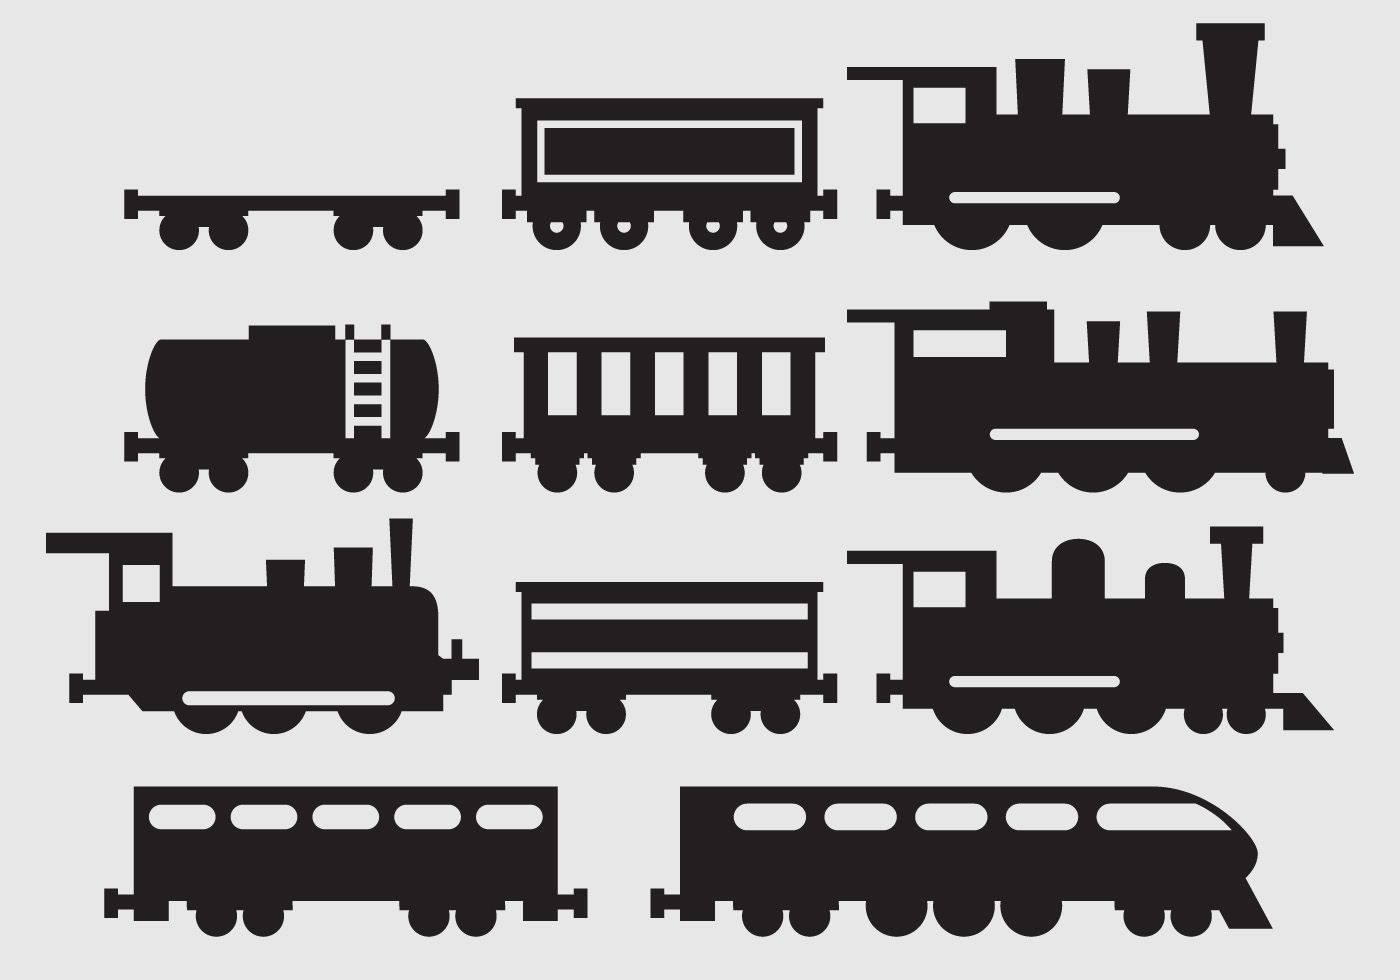 If You Re Making Railroad And Train Designs You Ll Need Some Train Silhouettes With Different Models Train Silhouette Train Clipart Silhouette Vector